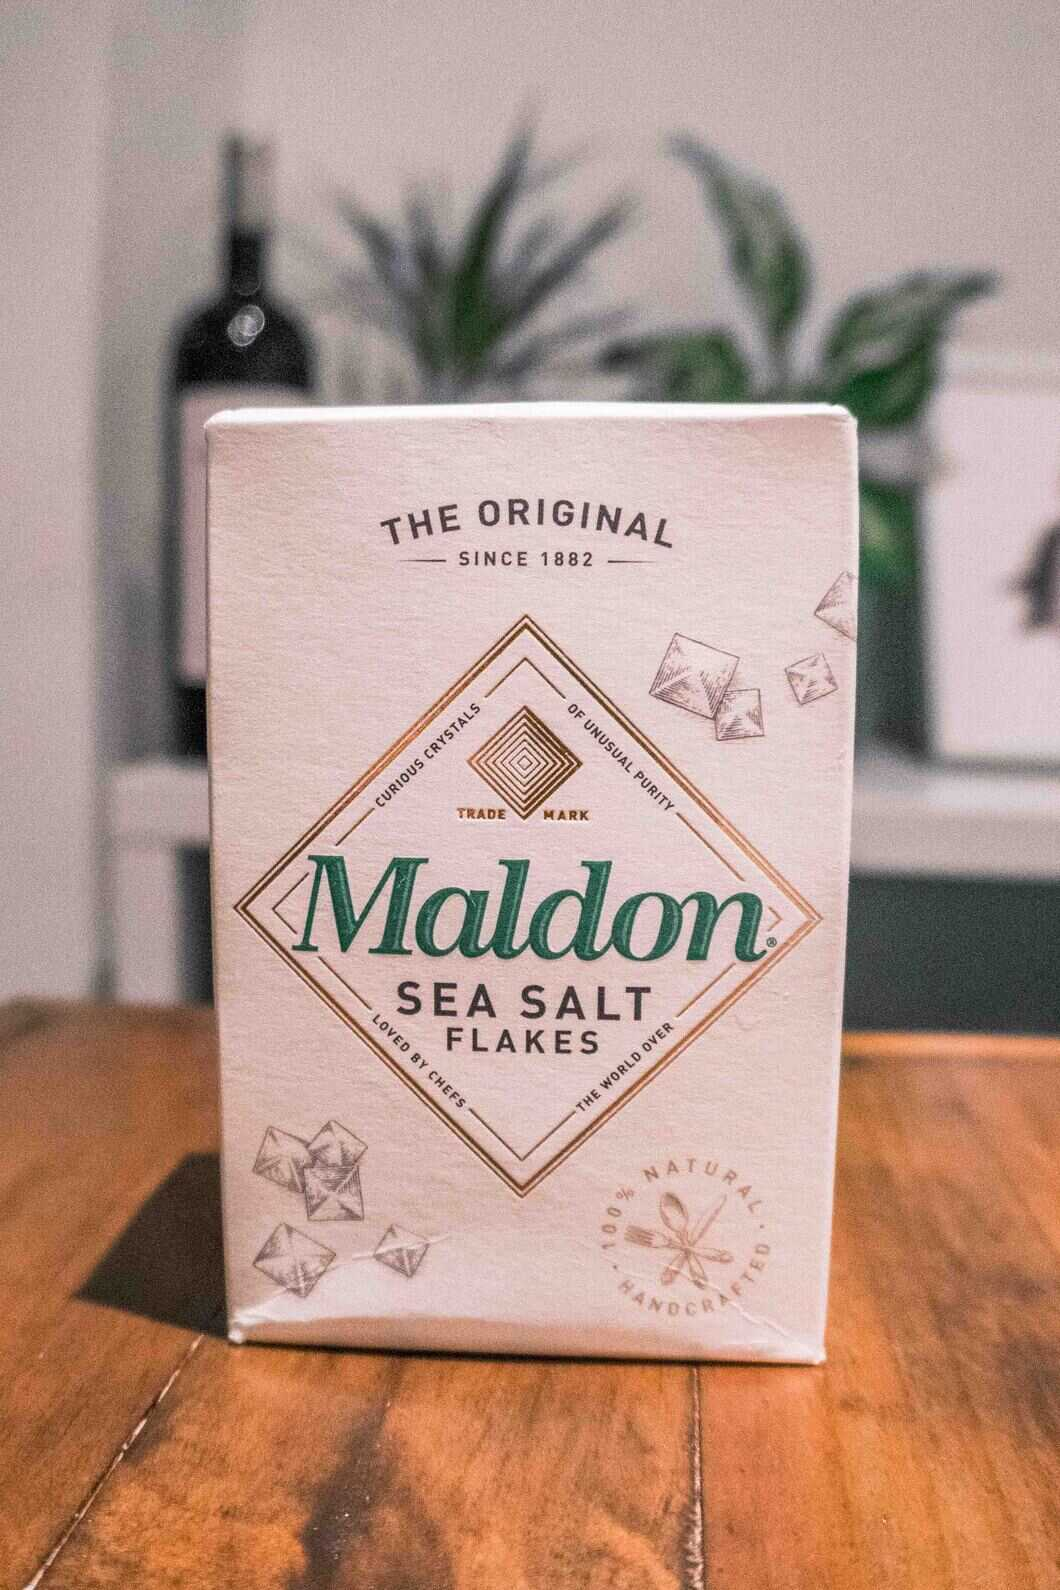 Maldon Sea Salt can easily be picked up from one of the supermarkets in the UK making it an easy gift to take home.